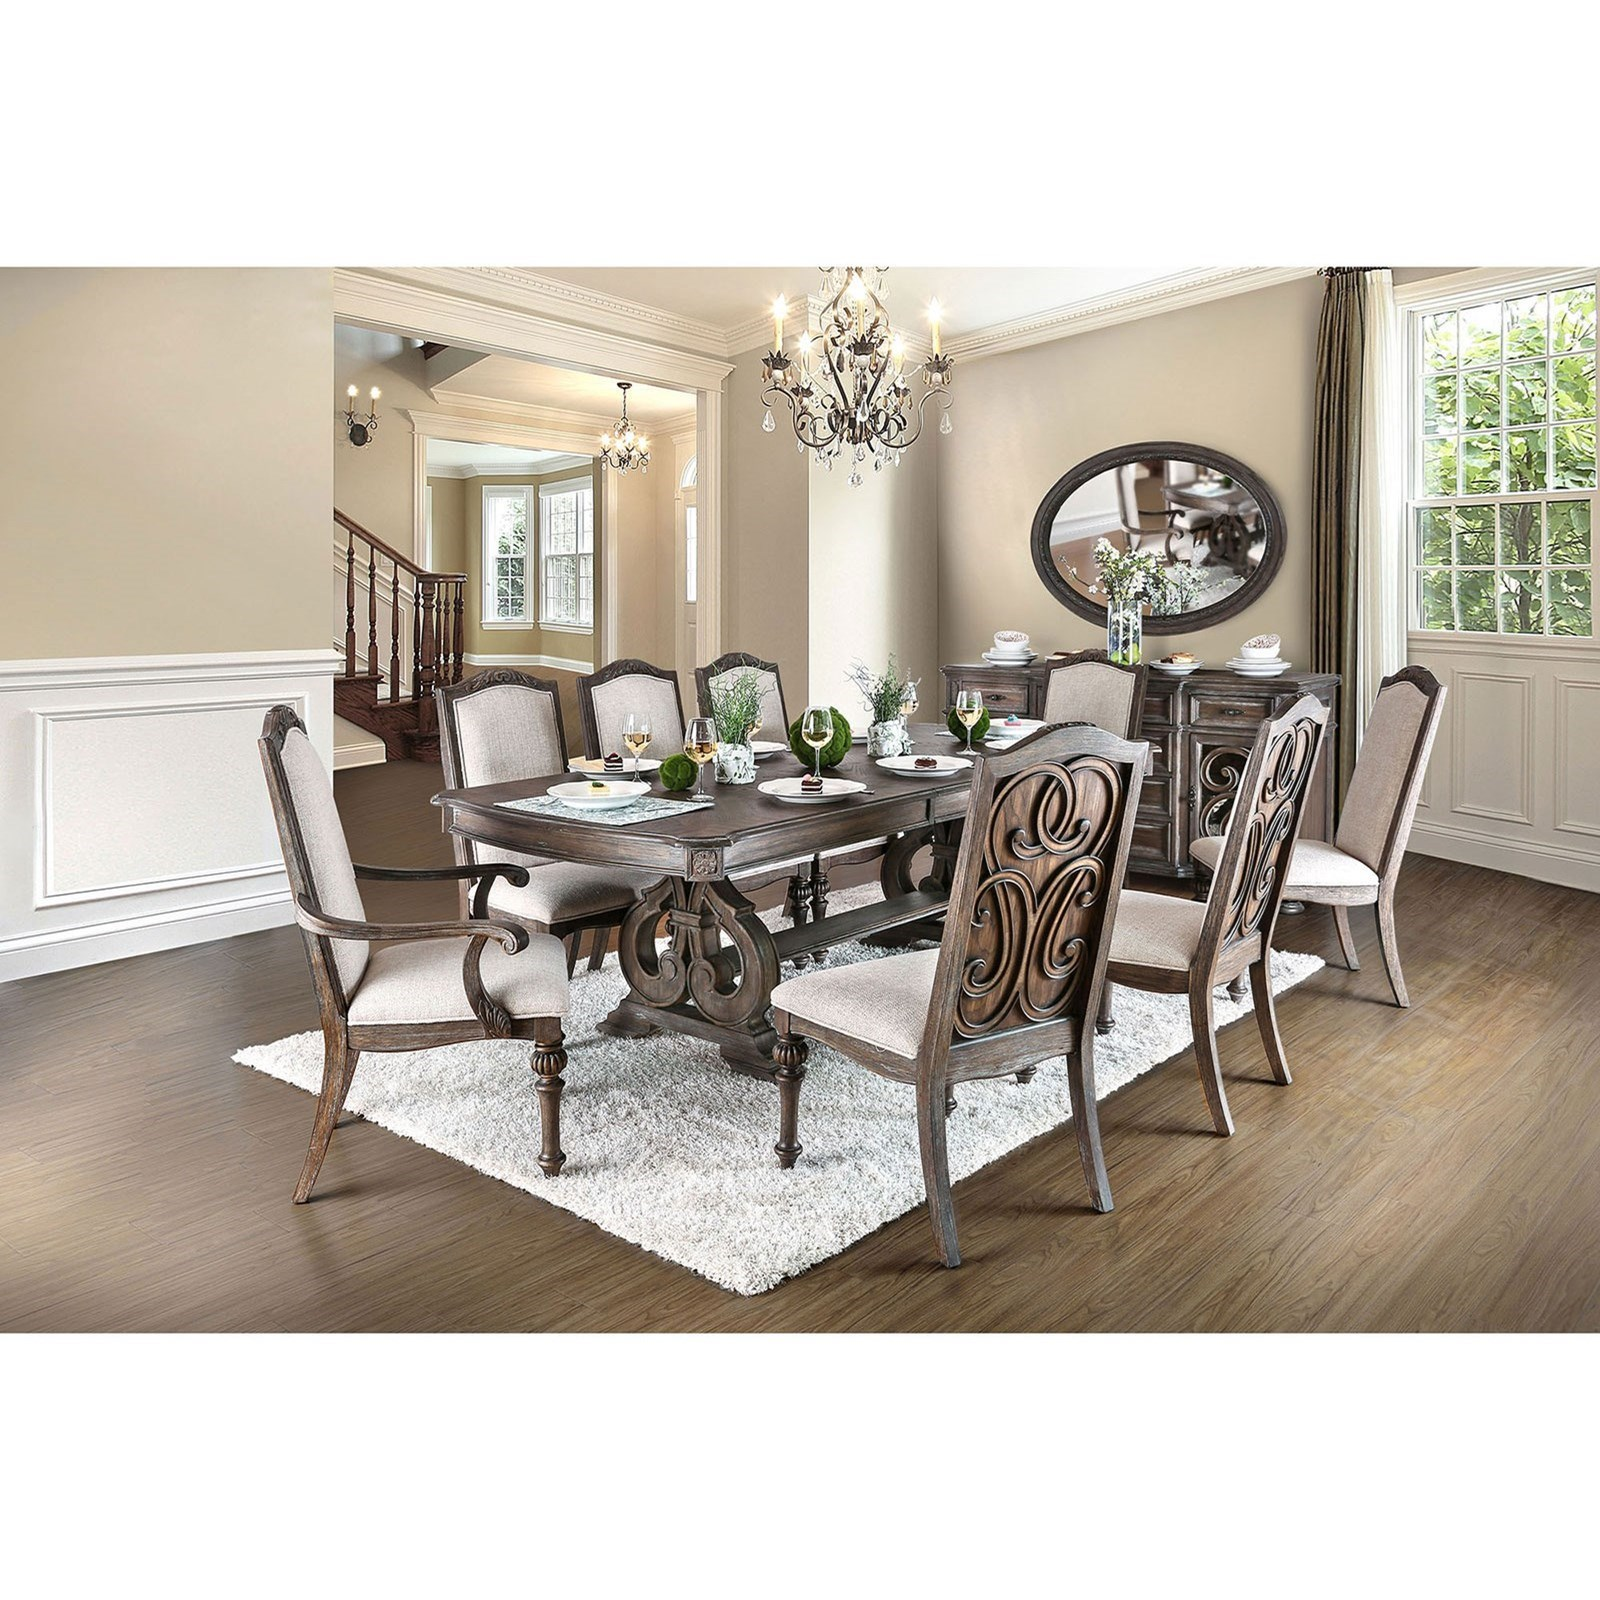 Arcadia Table + 2 Arm Chair + 6 Side Chairs at Household Furniture